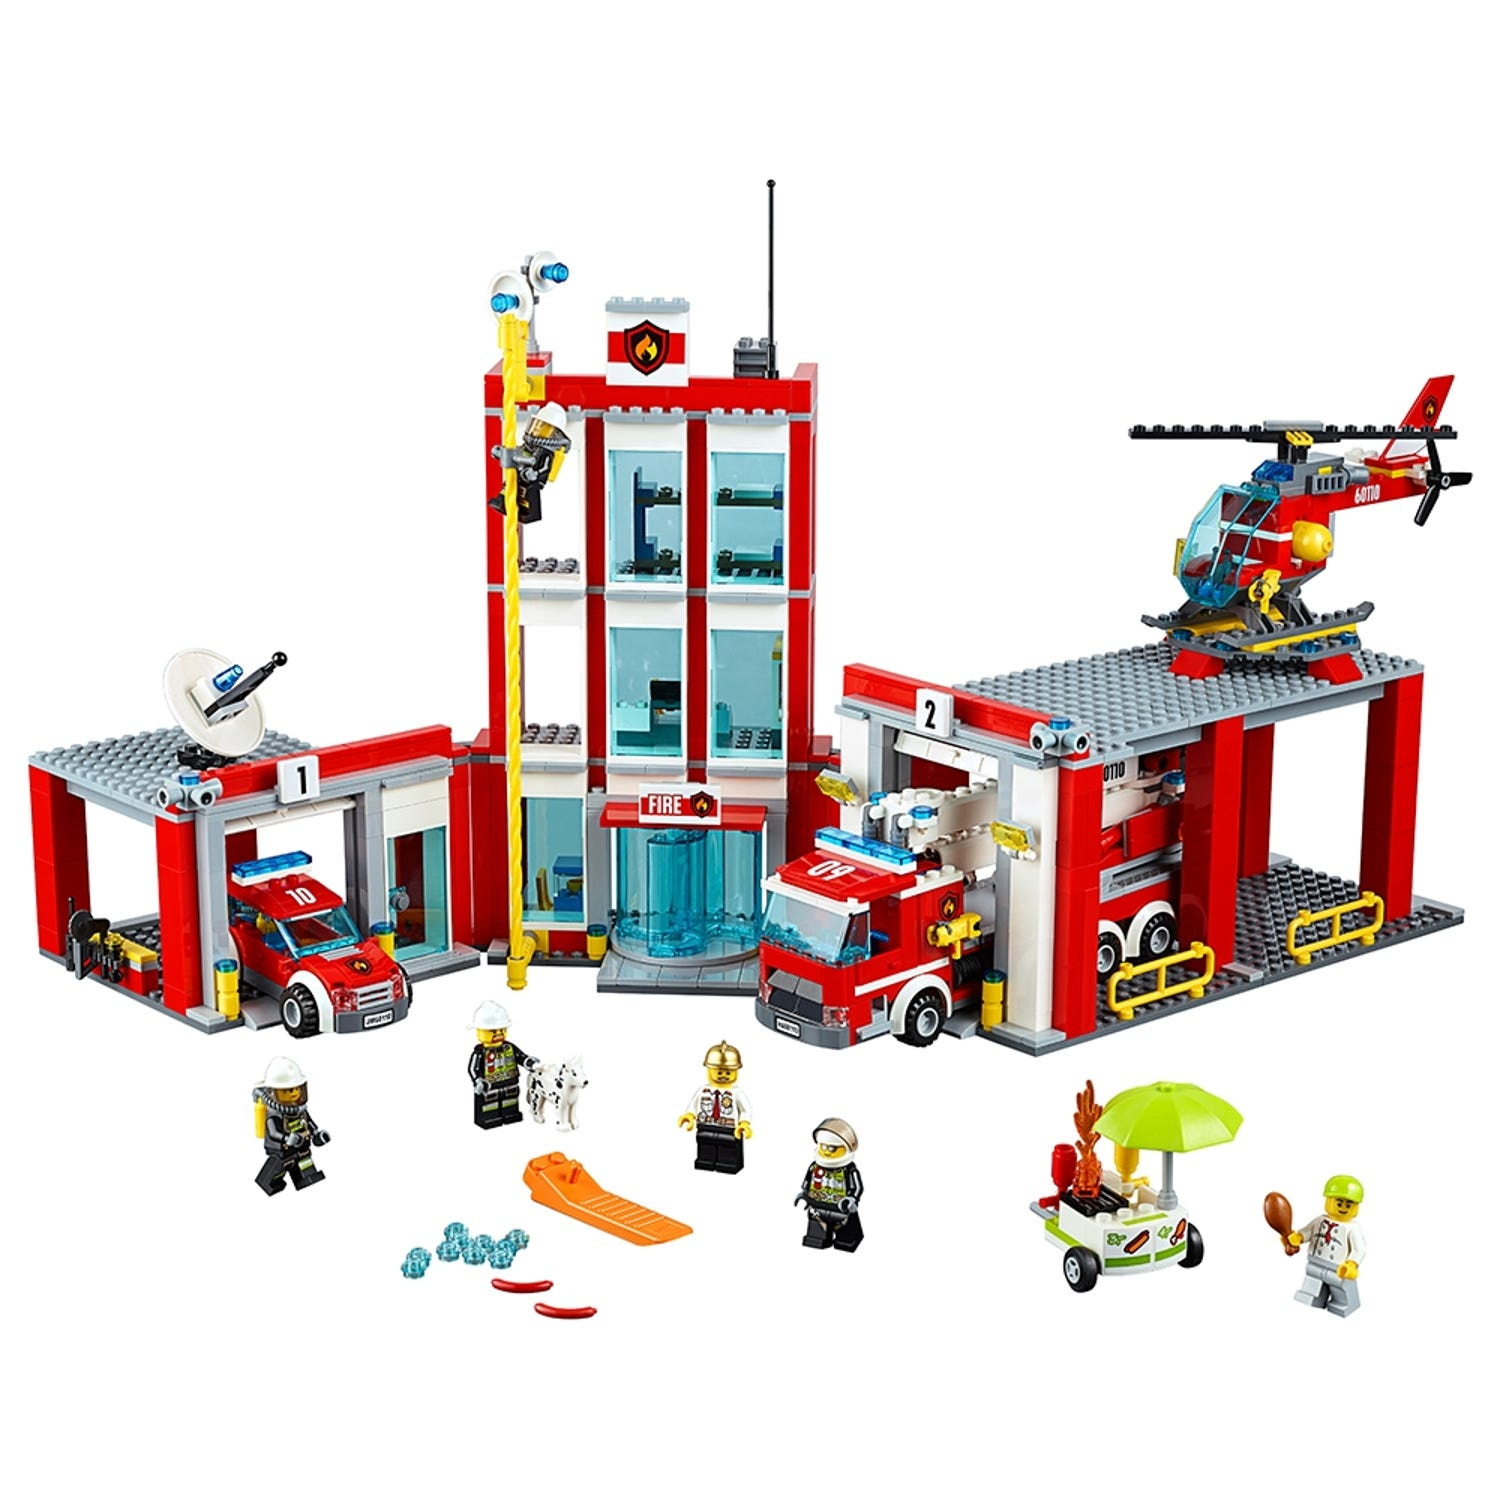 Fire Station 60110 City Buy Online At The Official Lego Shop Us